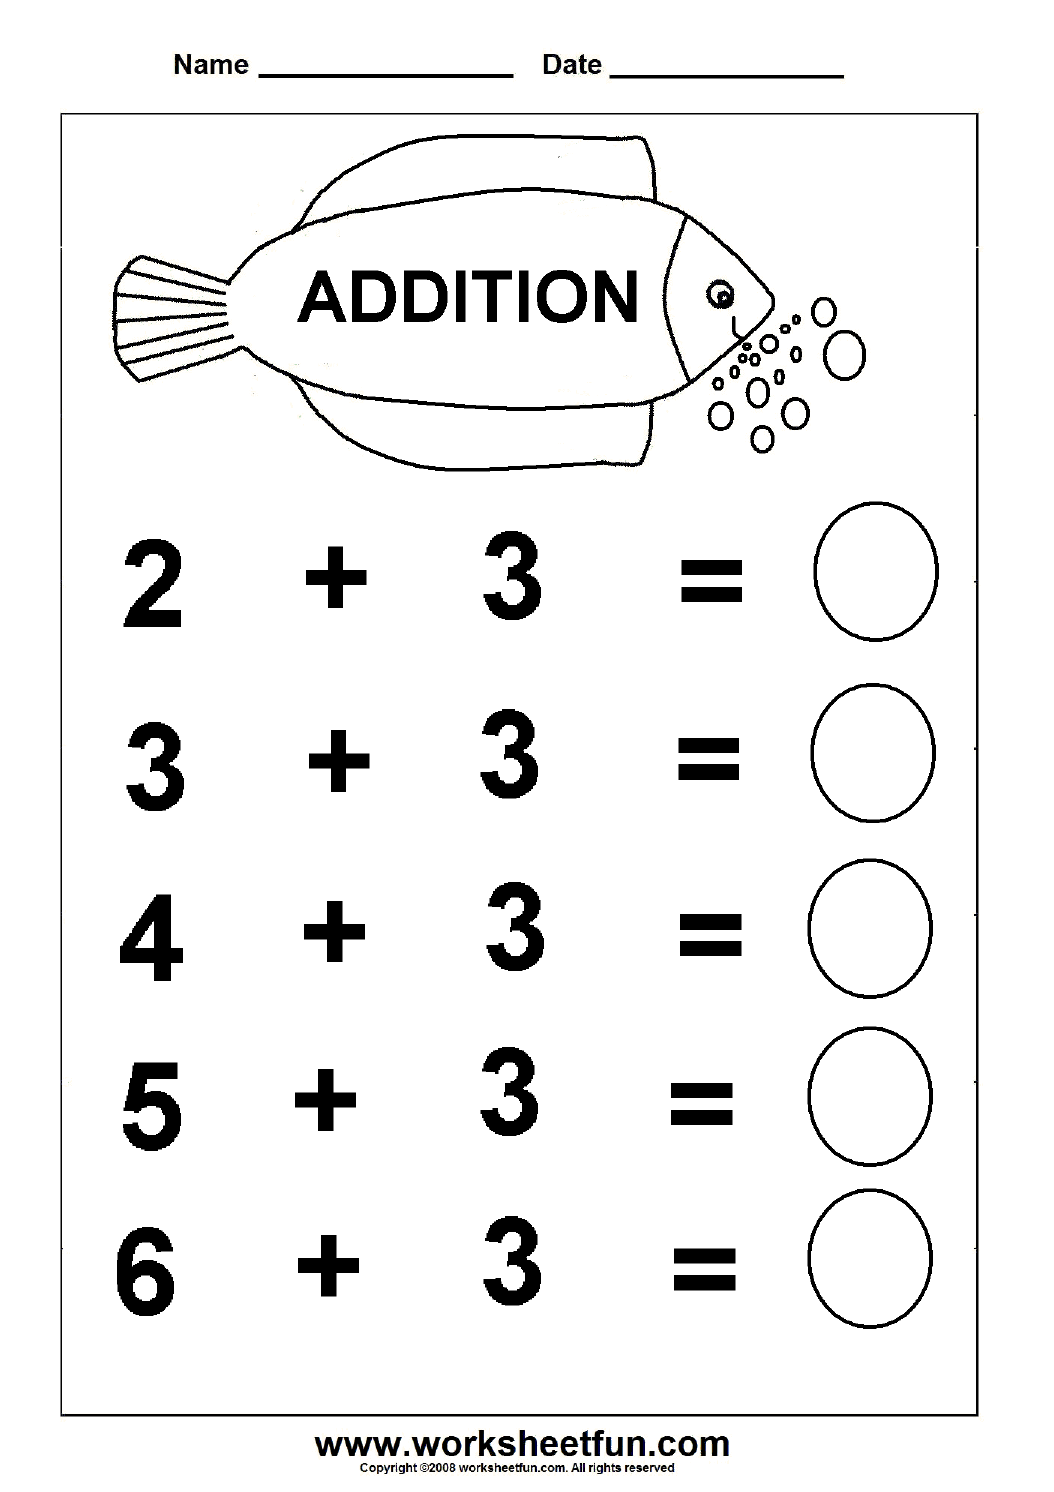 Worksheets Basic Addition Worksheets addition basic facts free printable worksheets beginner 6 kindergarten worksheets